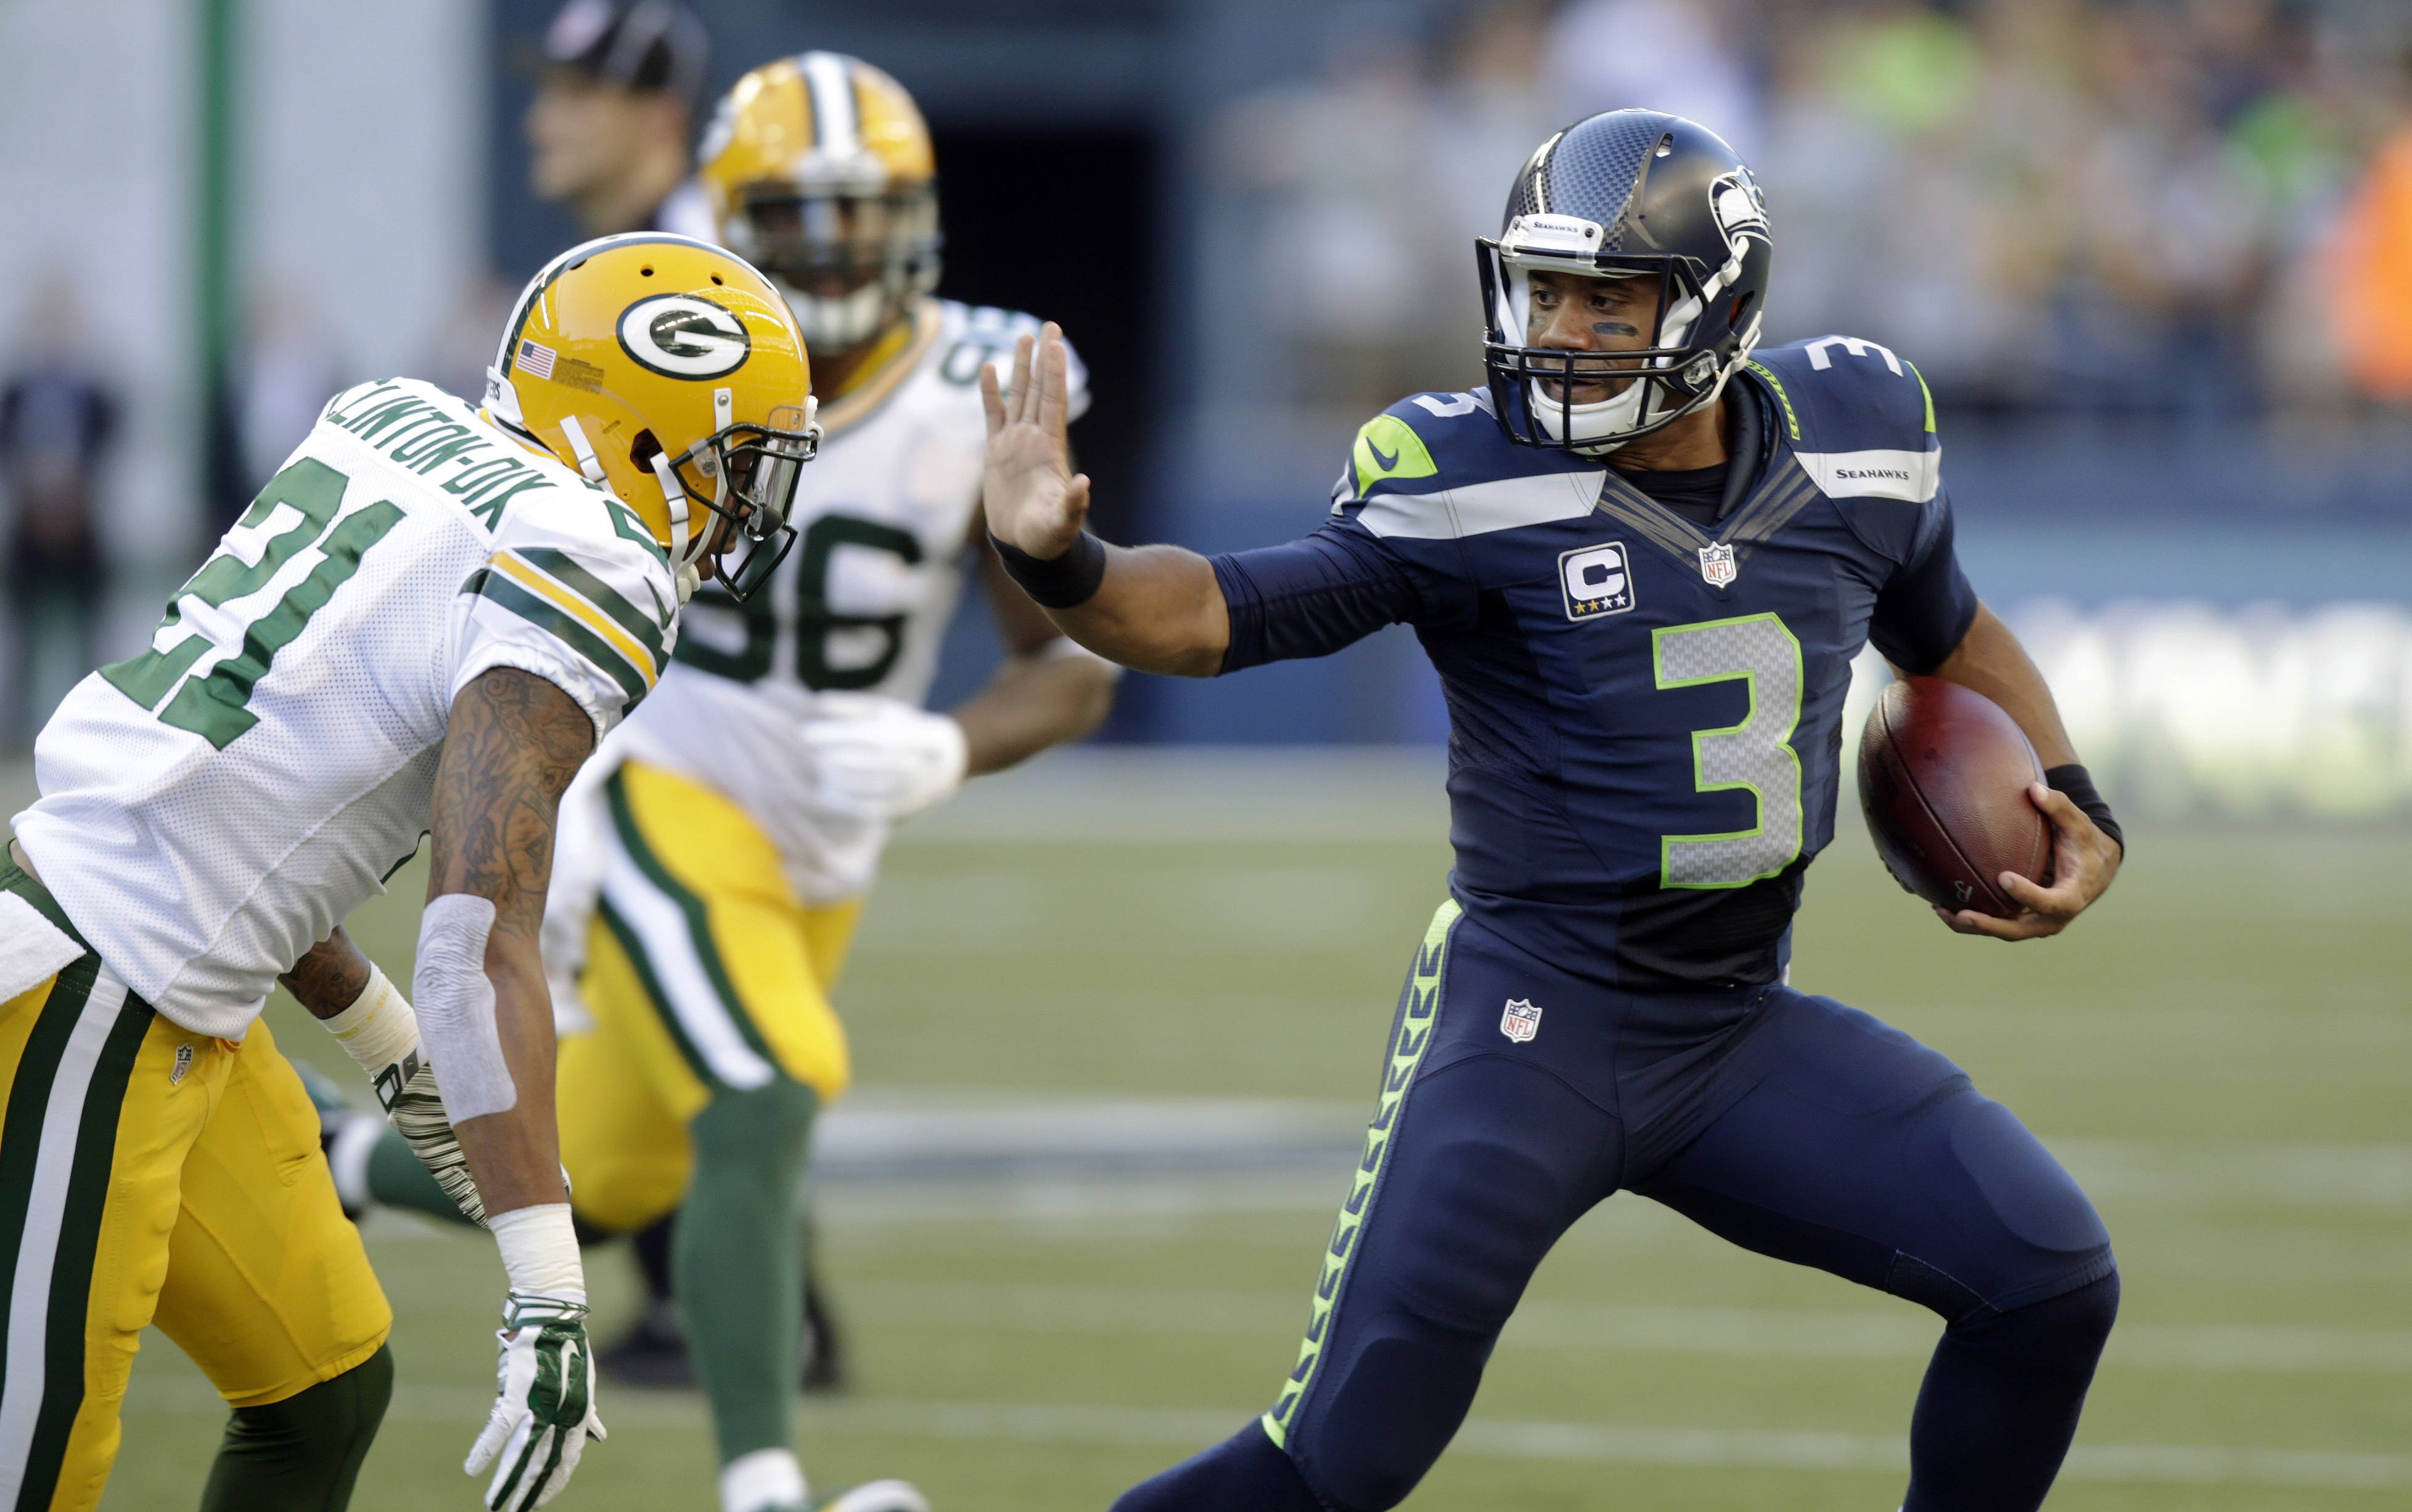 Seattle Seahawks quarterback Russell Wilson (3) avoids Green Bay Packers' Ha Ha Clinton-Dix (21) during the first half of an NFL football game, Thursday, Sept. 4, 2014, in Seattle.